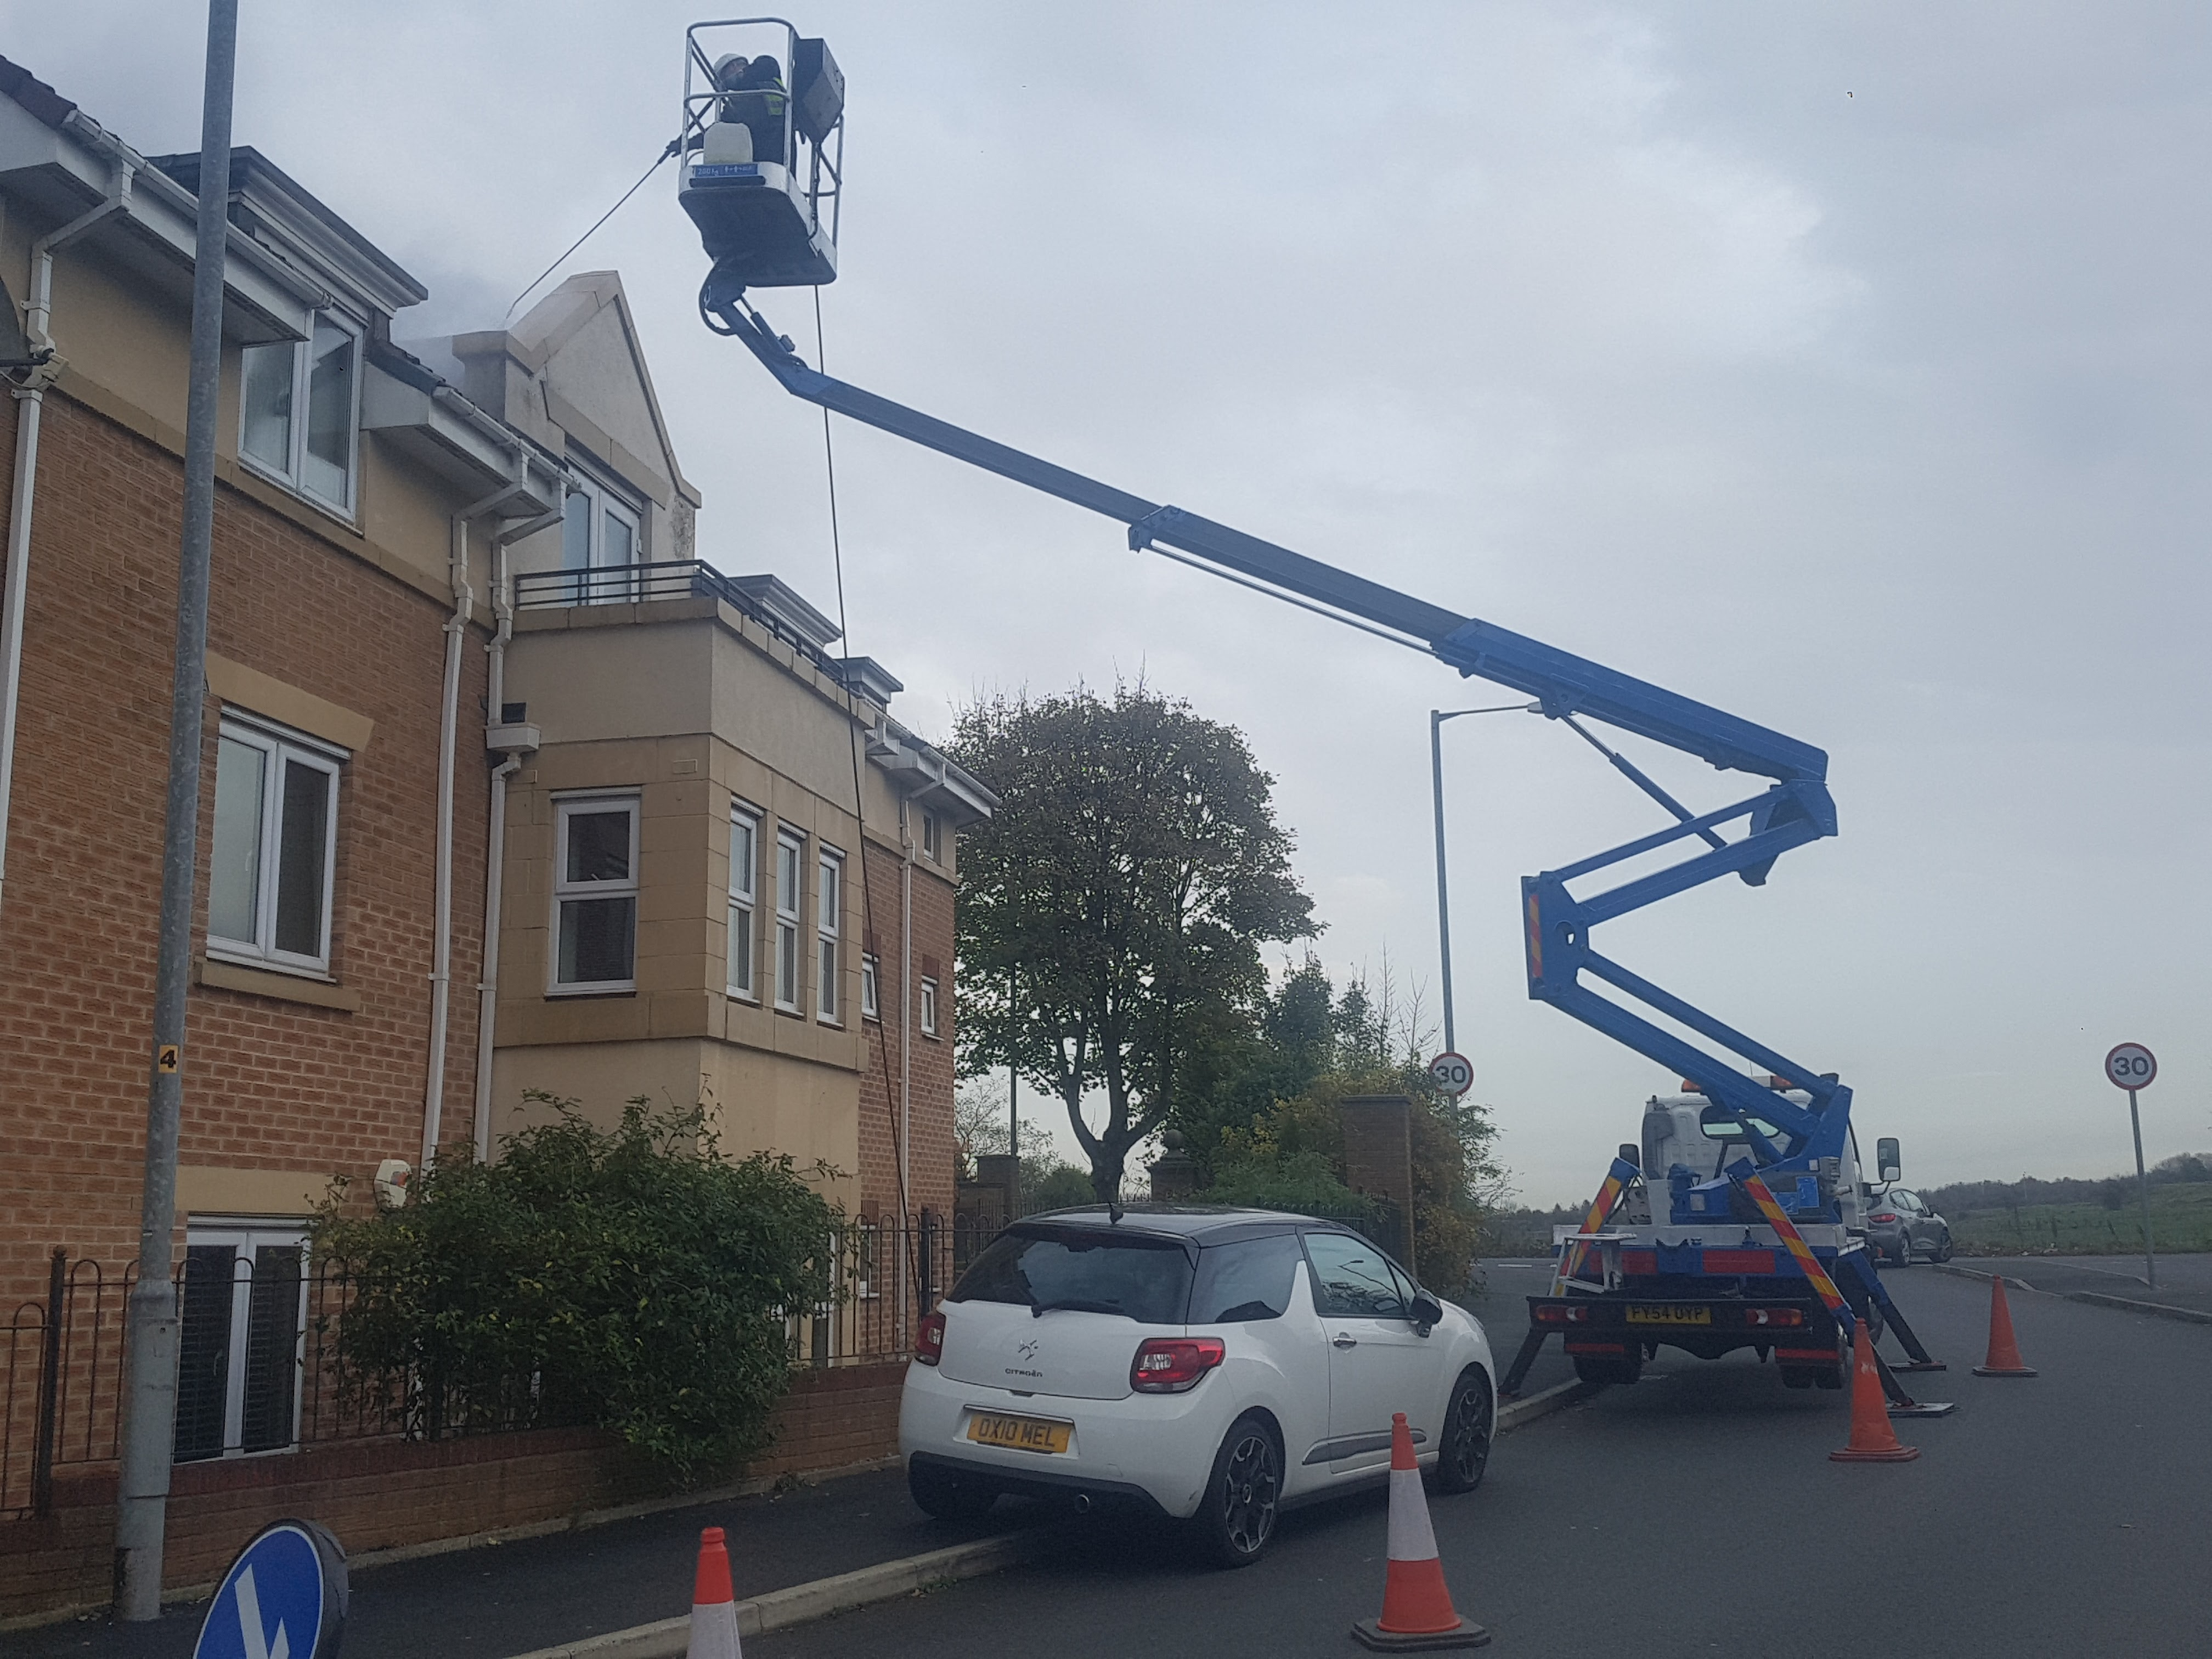 Cherry picker access platform hire in Bolton, Manchester